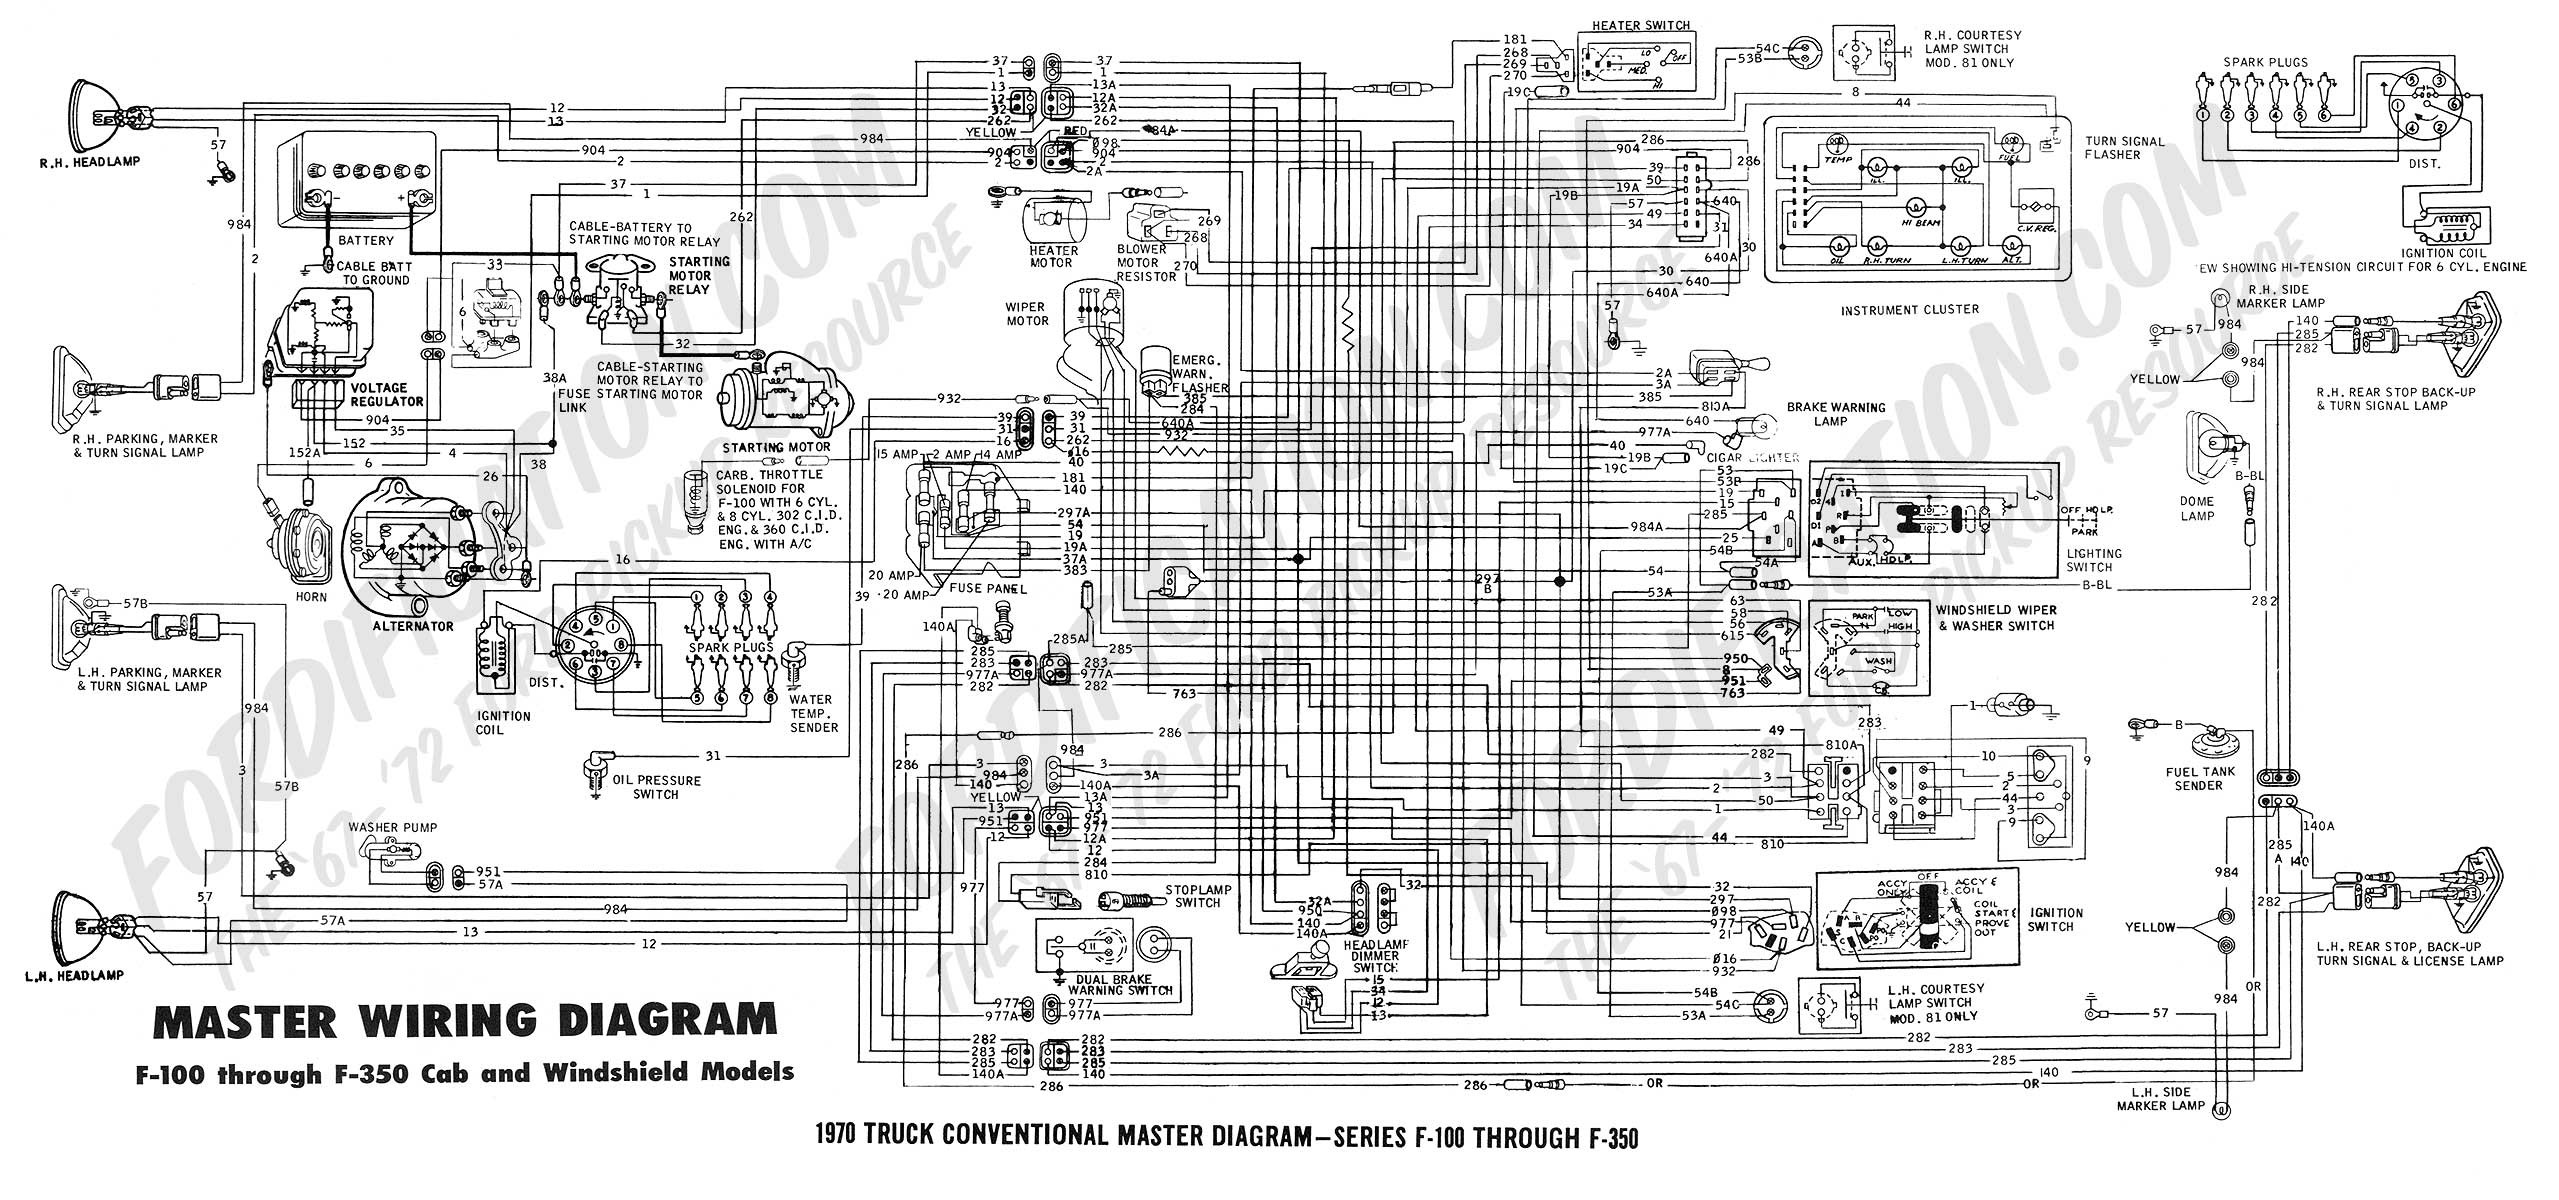 1986 Ford F 350 Wiring Diagram Schematics Diagrams I Need A For F350 Images Gallery